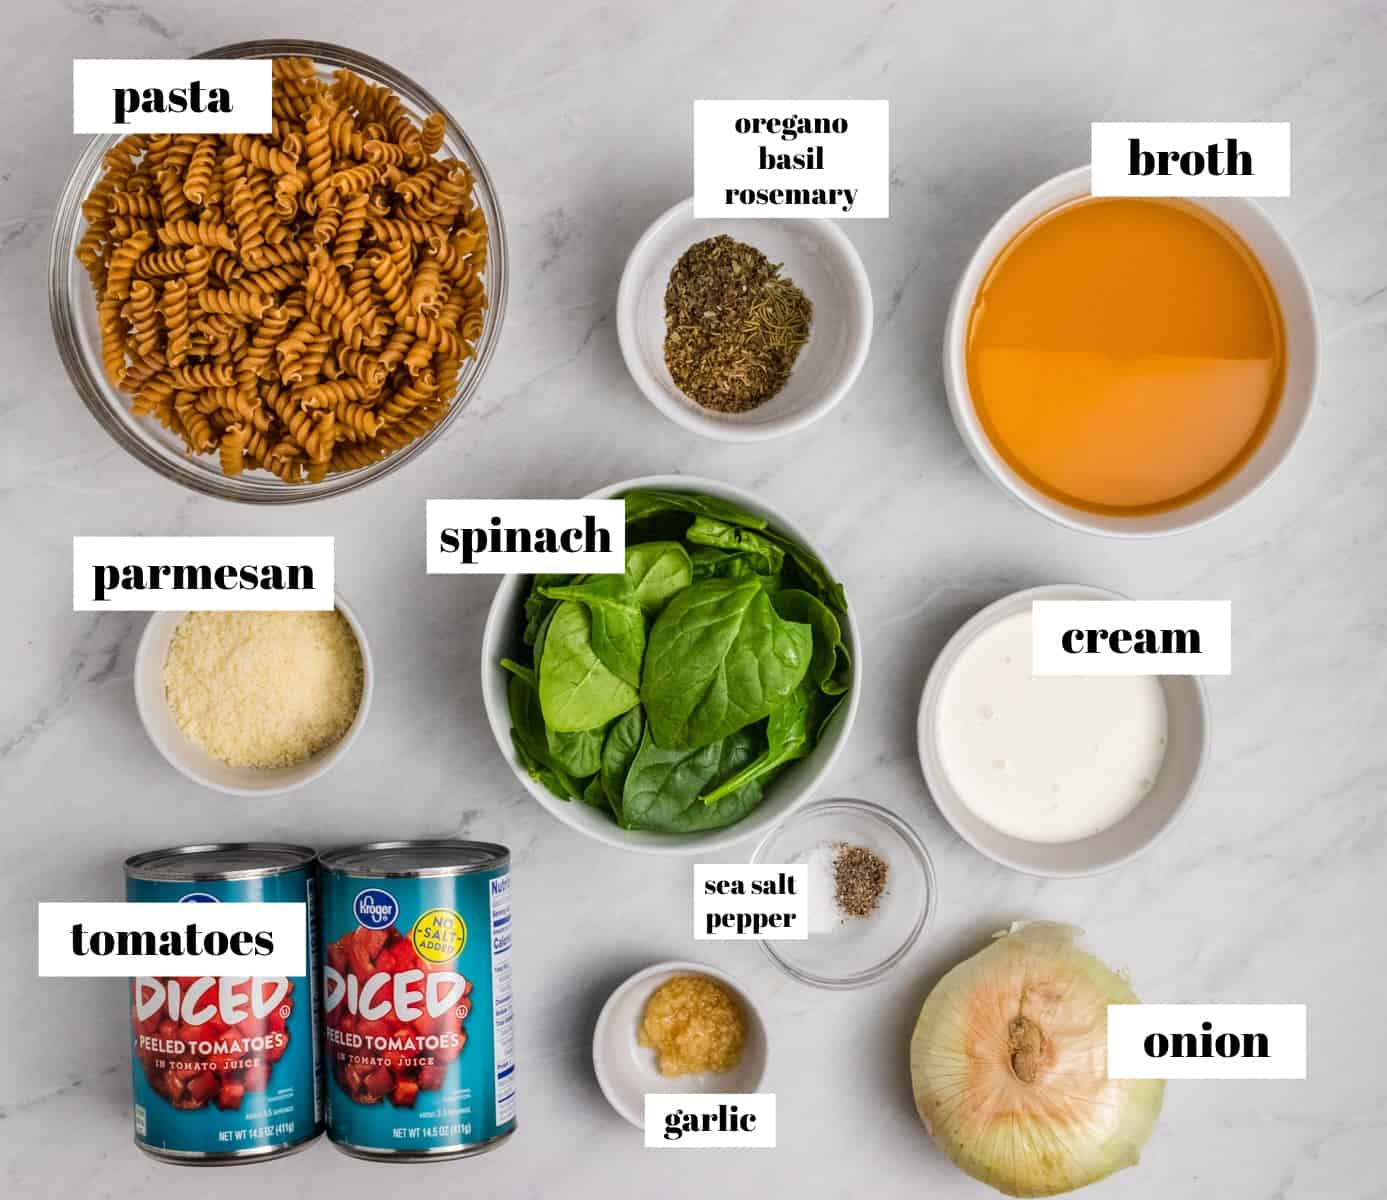 Rotini, broth, spinach, cheese and other ingredients on counter labeled.